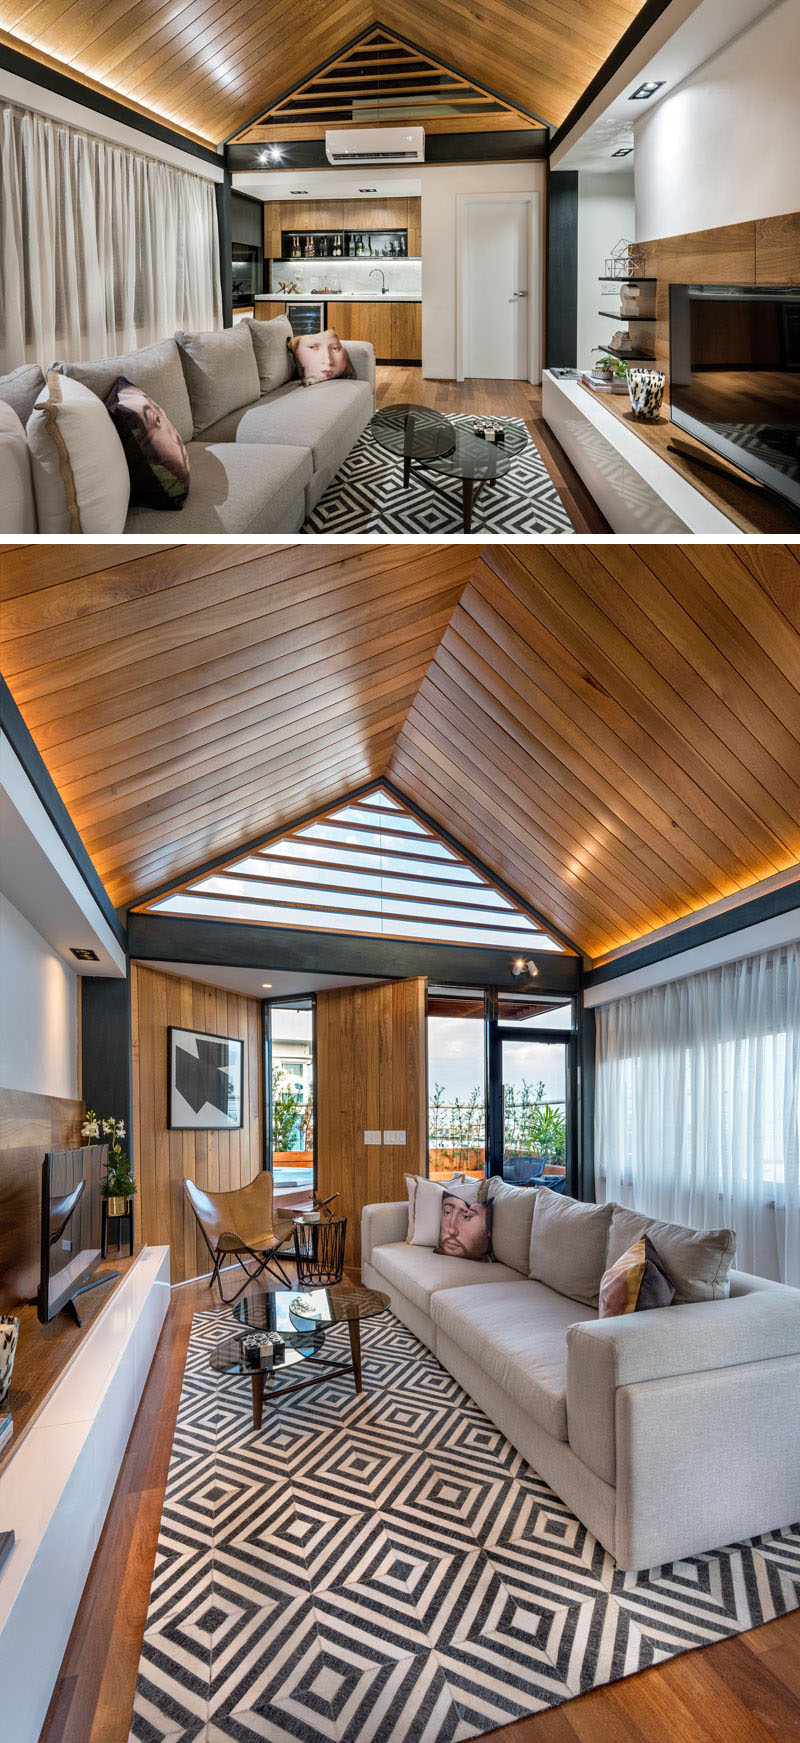 This rooftop terrace is home to a gabled wooden ceiling with hidden lighting. There's also a small kitchen/bar area and a large couch makes for a comfortable spot to watch movies.